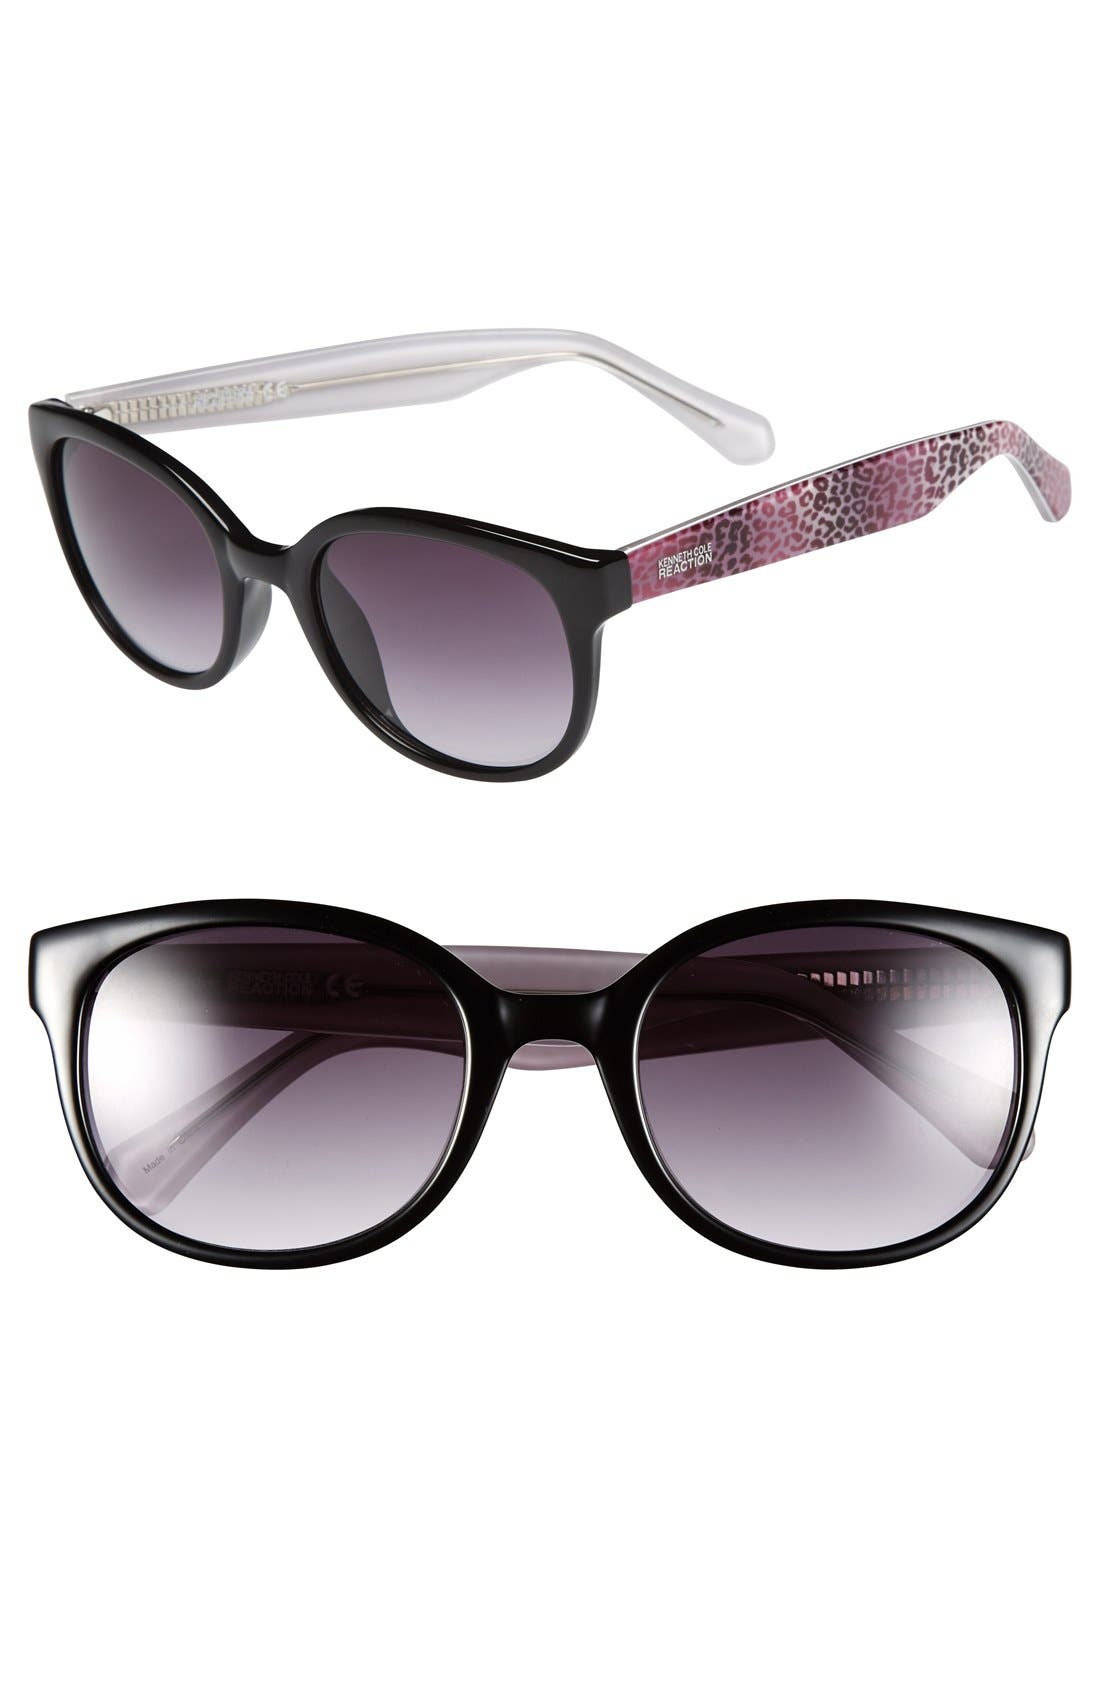 Main Image - Kenneth Cole Reaction 53mm Sunglasses